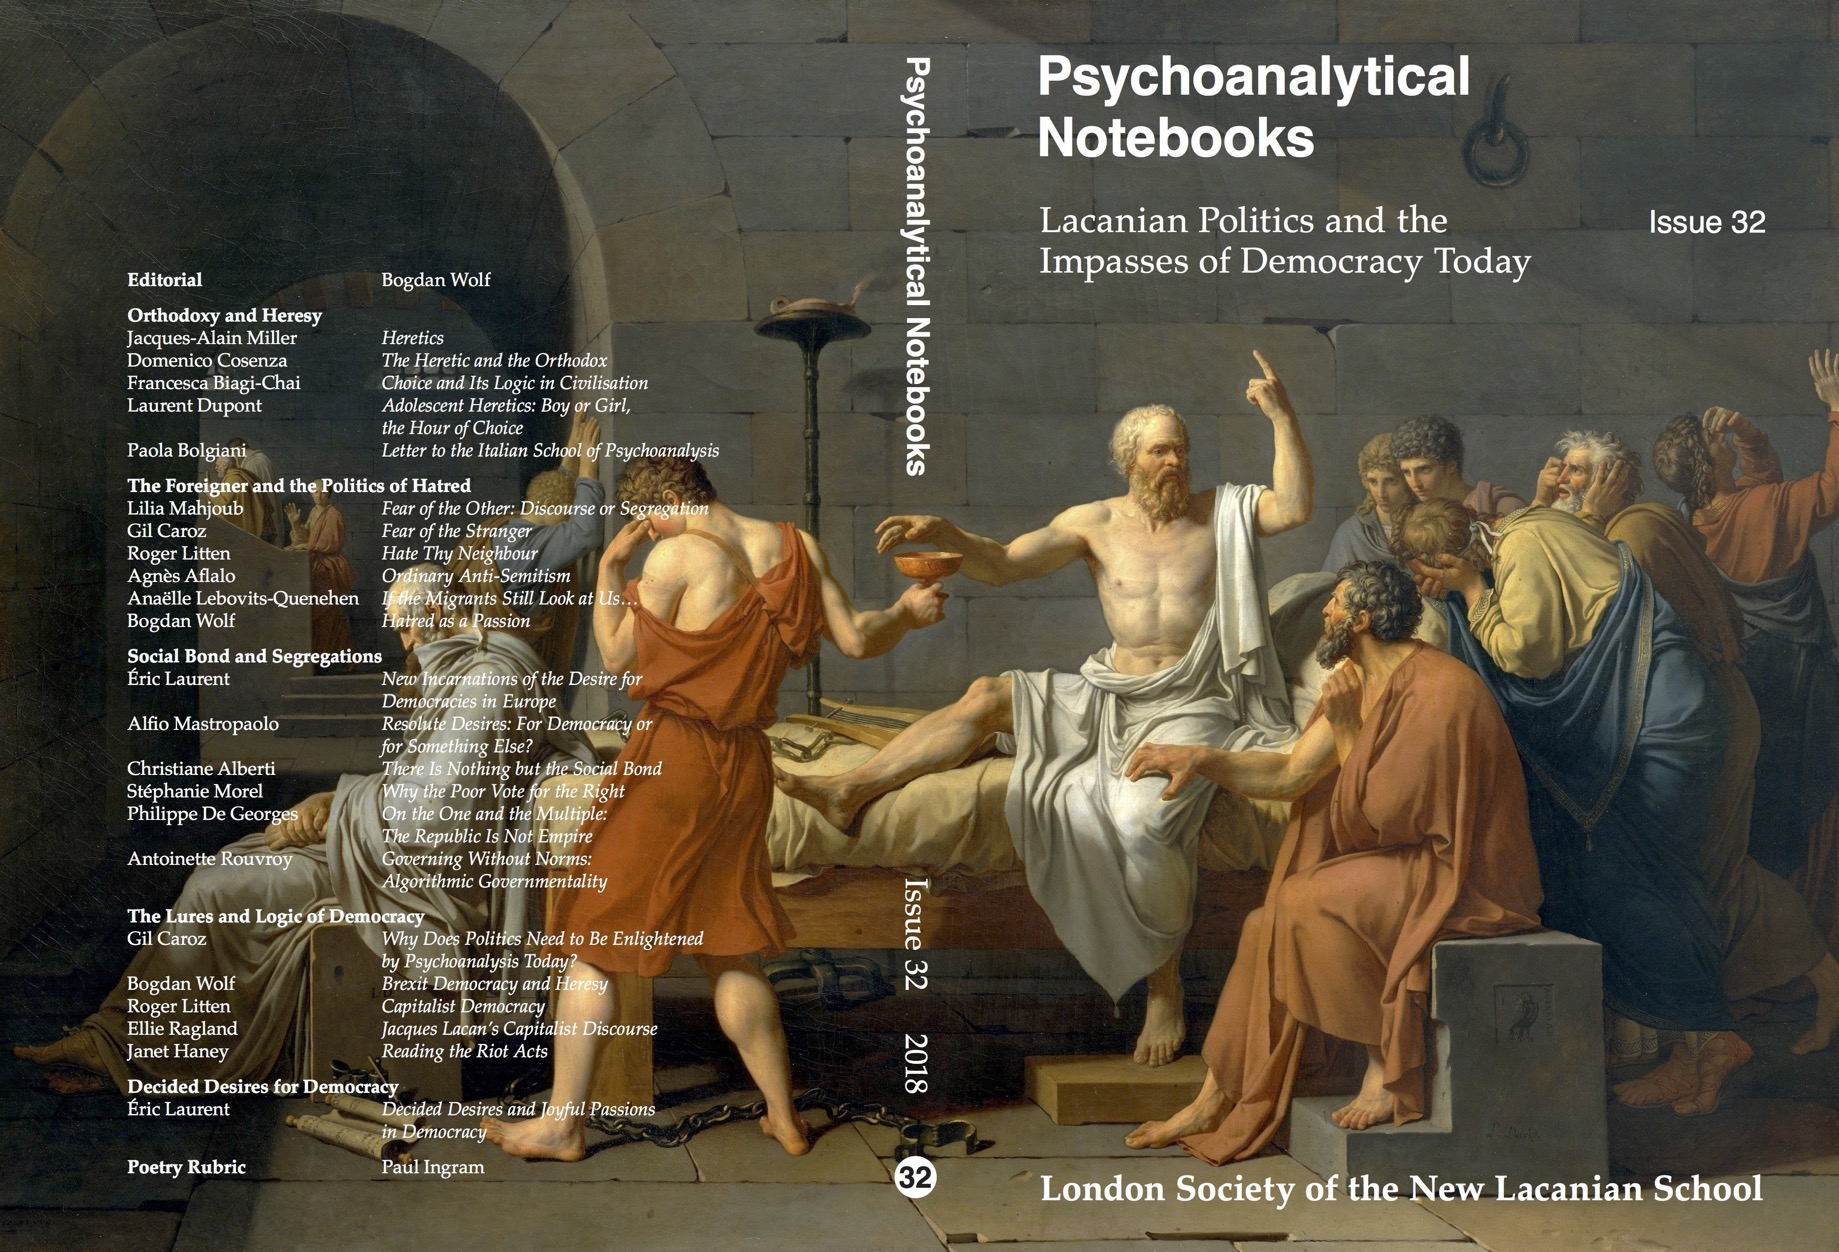 http://www.londonsociety-nls.org.uk/index.php?file=Publications/The-Psychoanalytical-Notebooks.html